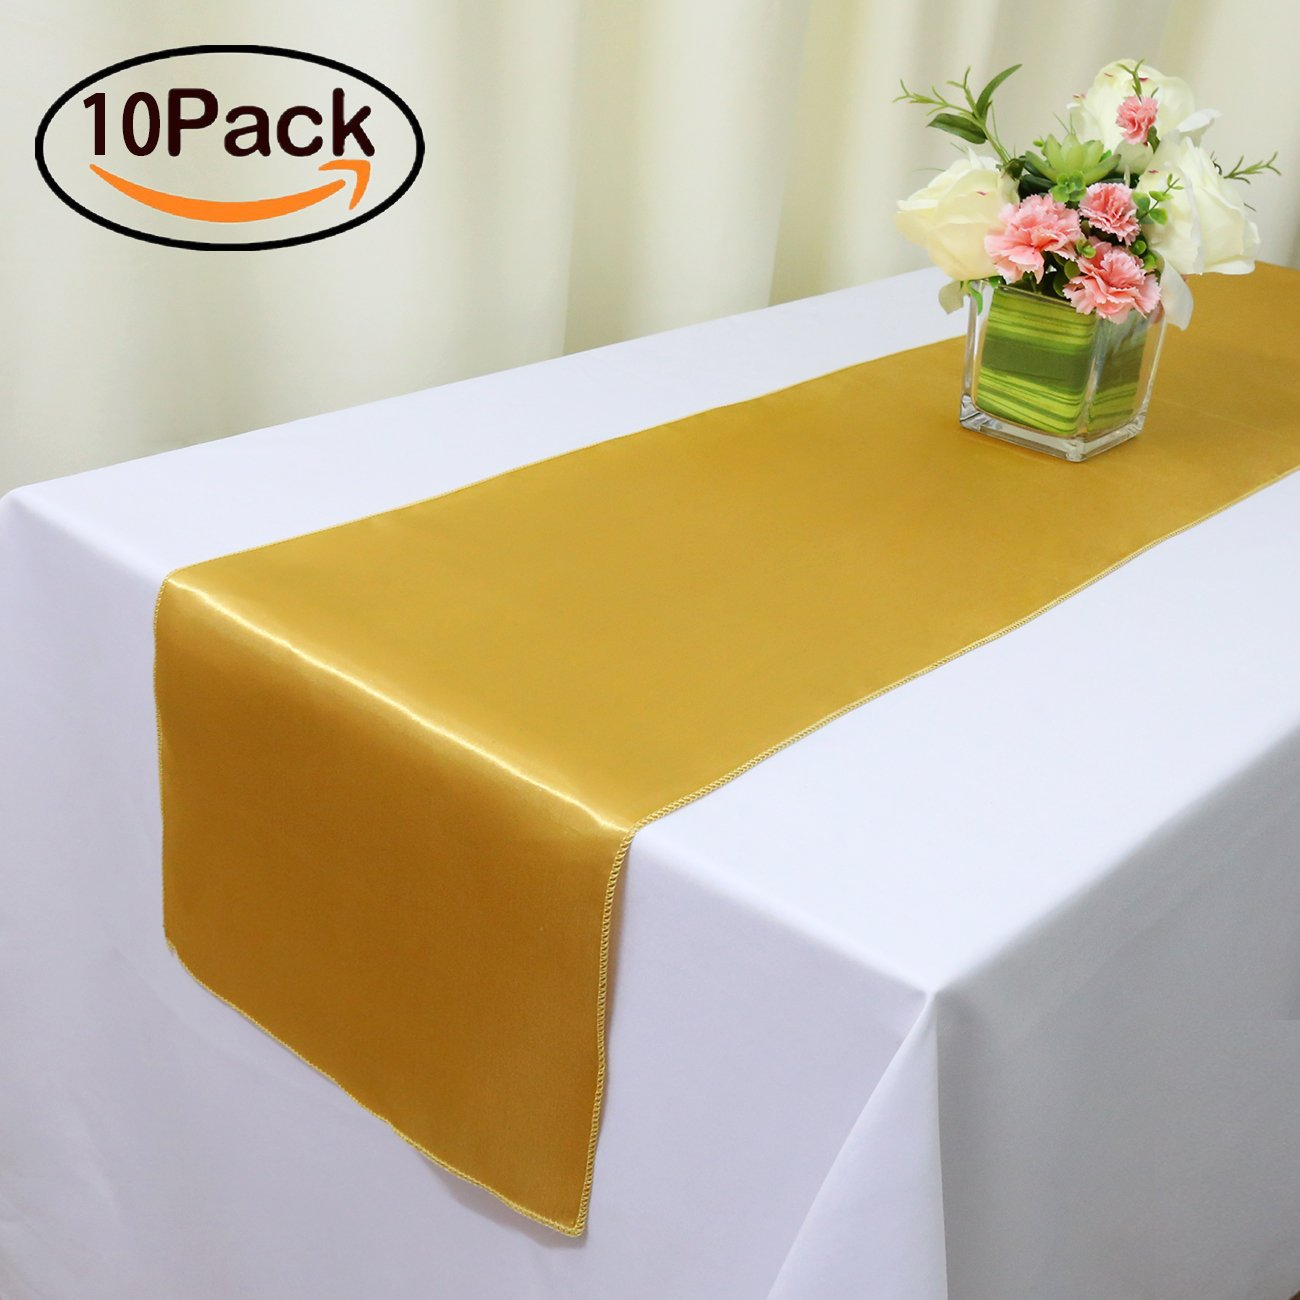 TRLYC 10pcs 12''X108'' Luxury Gold Satin Table Runners Wedding Party Table Decoration Accessories Home Textiles